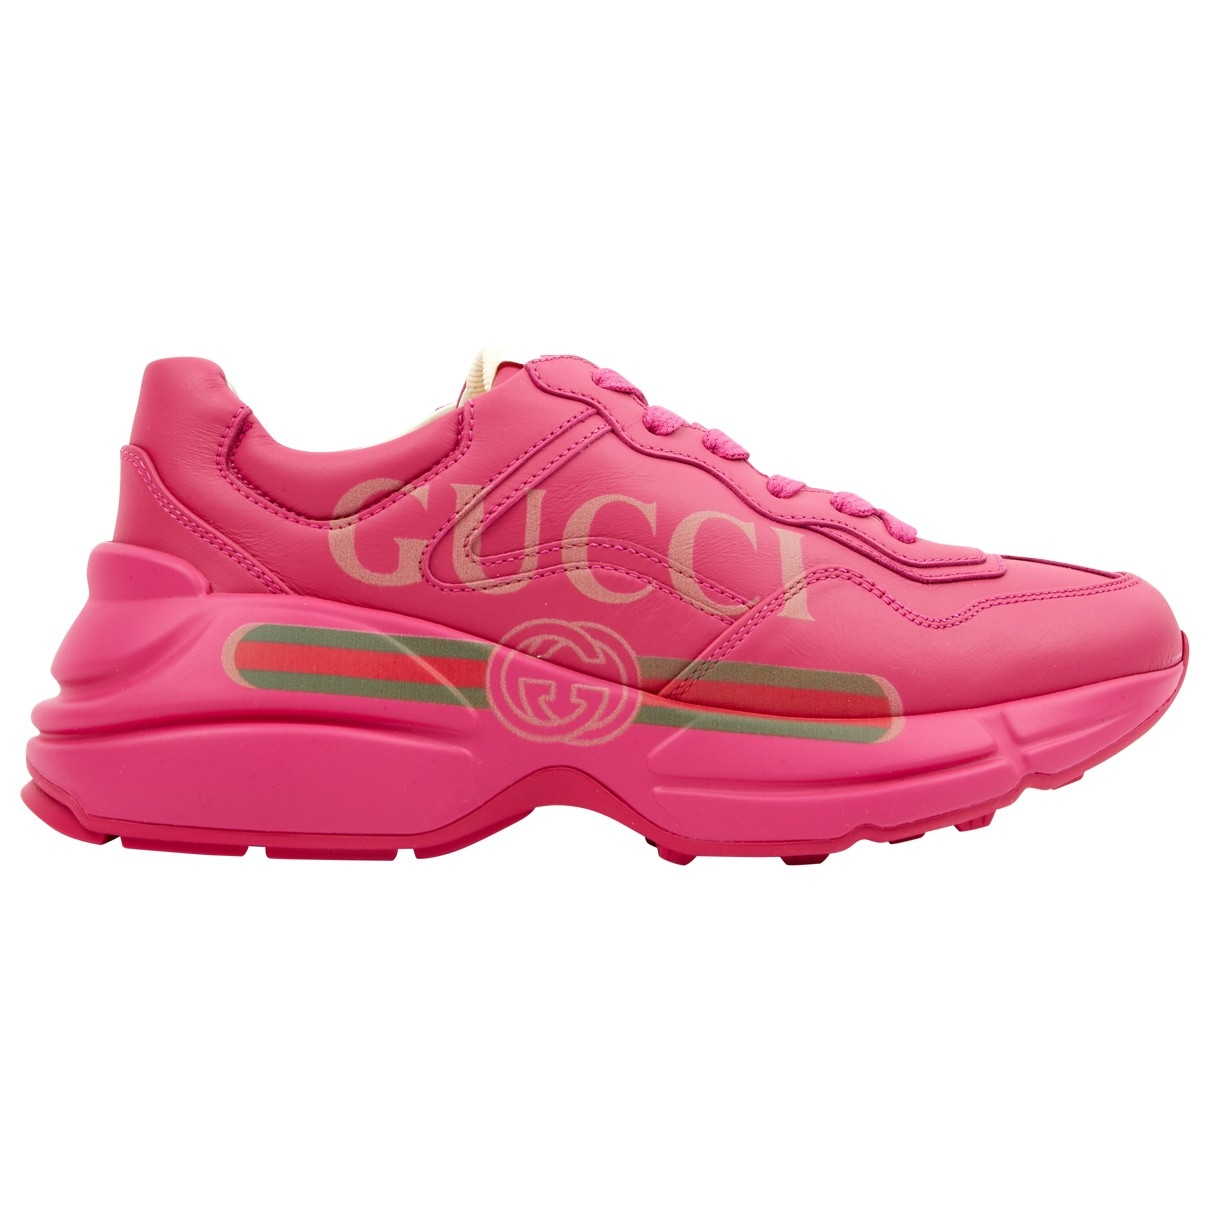 Gucci Rhyton Pink Leather Trainers for Women 37.5 EU